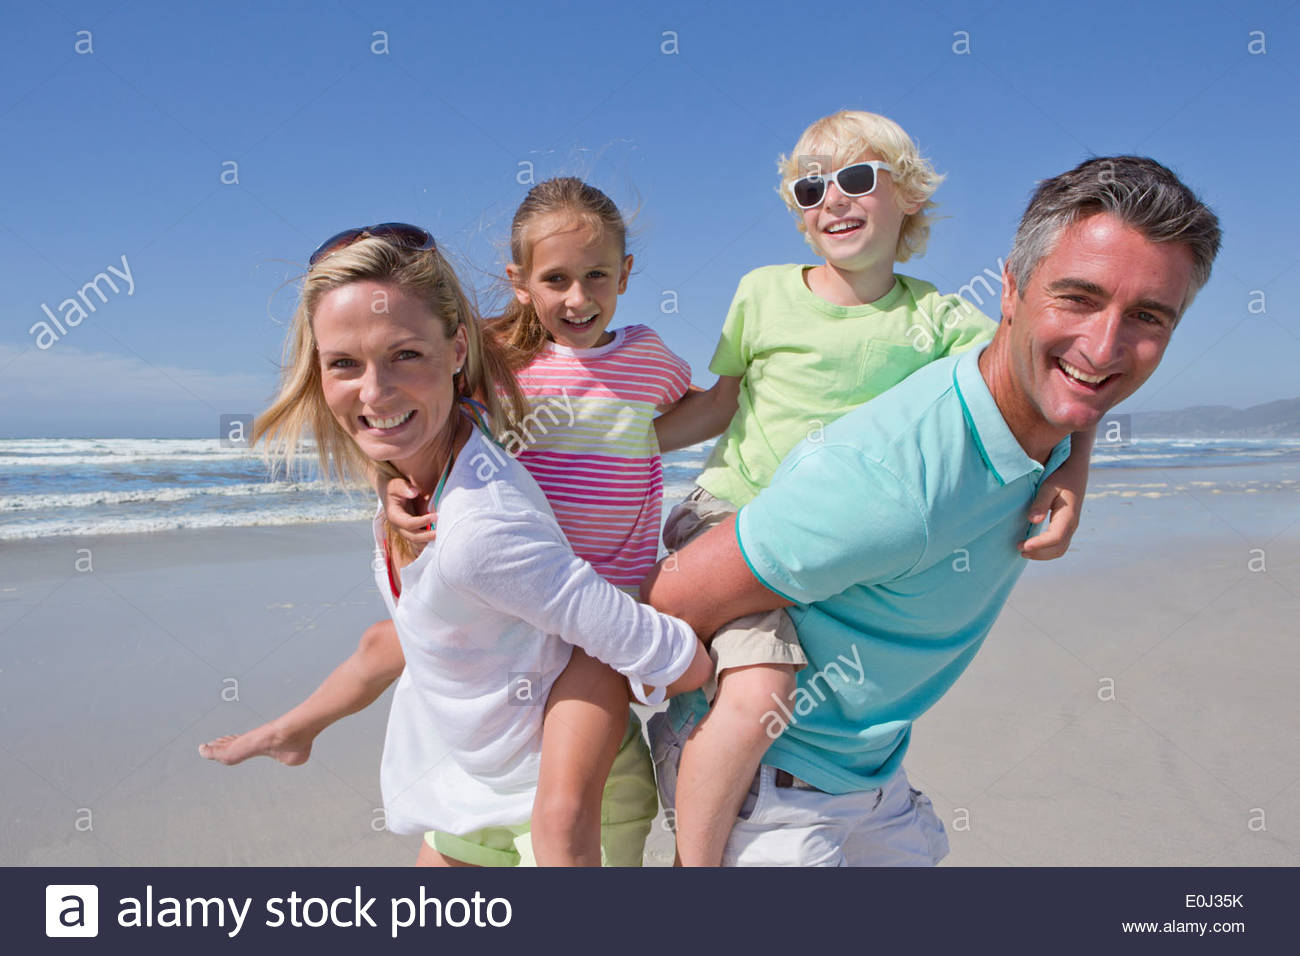 Portrait of smiling parents piggybacking children on sunny beach - Stock Image